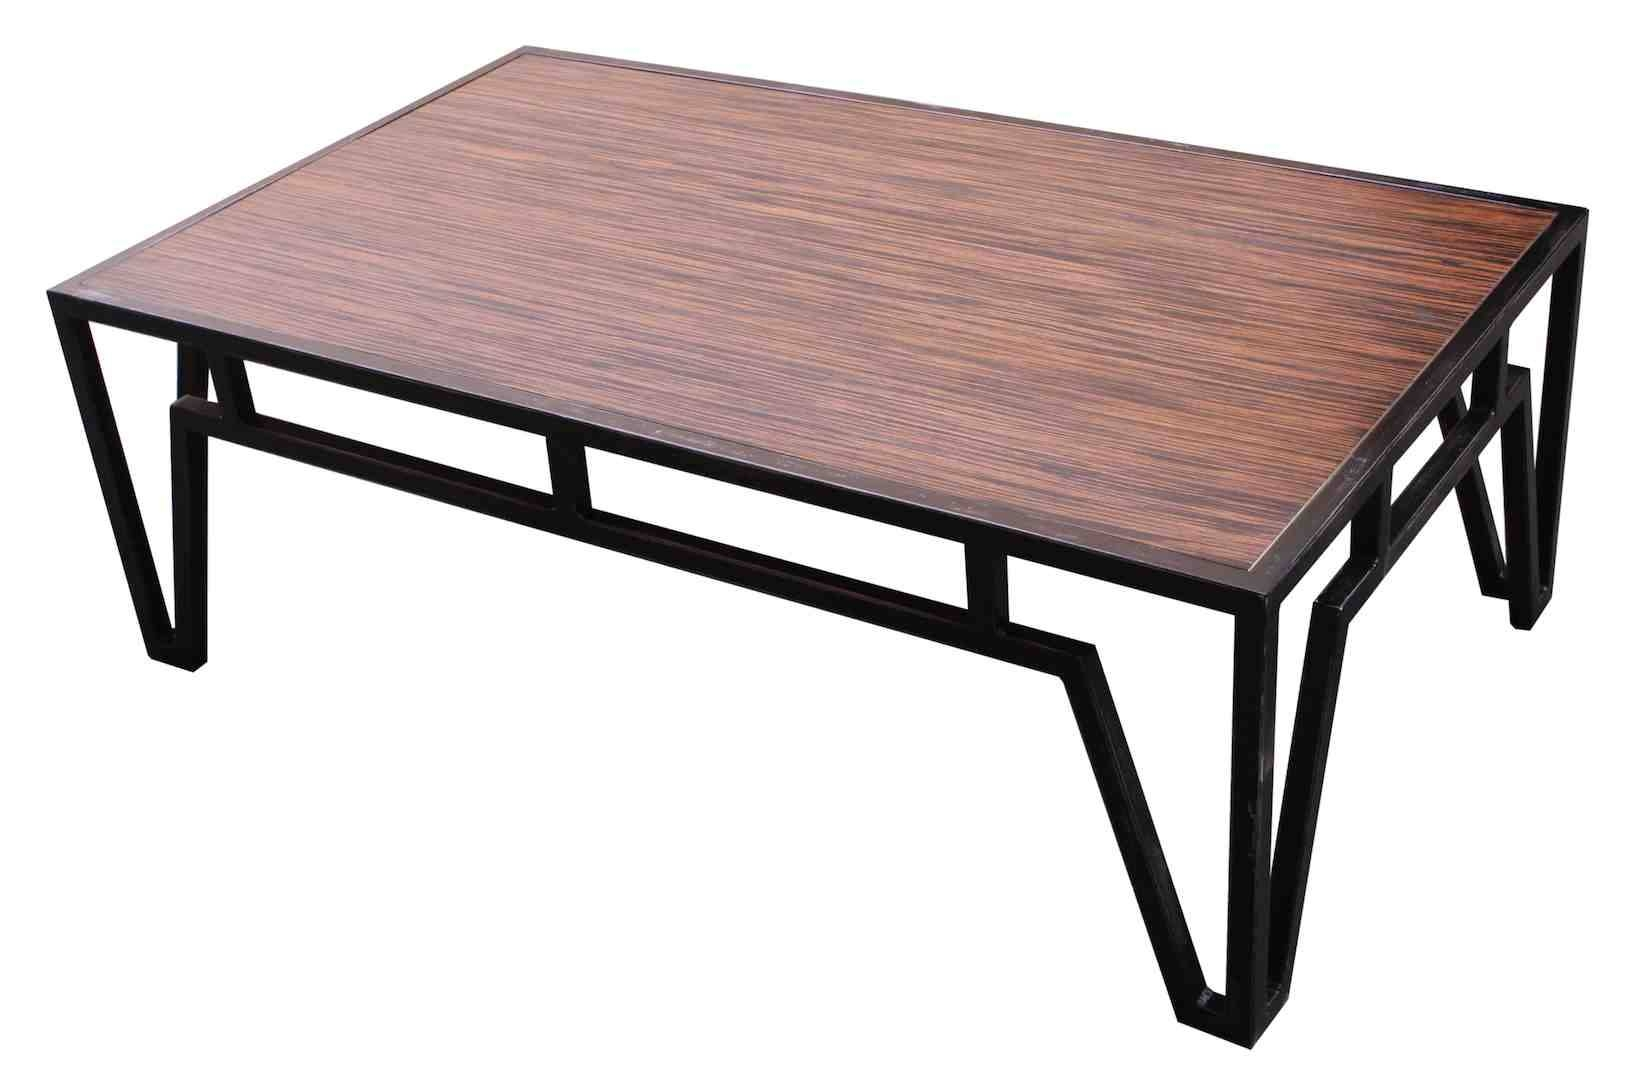 Metal Coffee Table Design Possibilities With Stylish Appeal | Best within Metal Coffee Tables (Image 22 of 30)